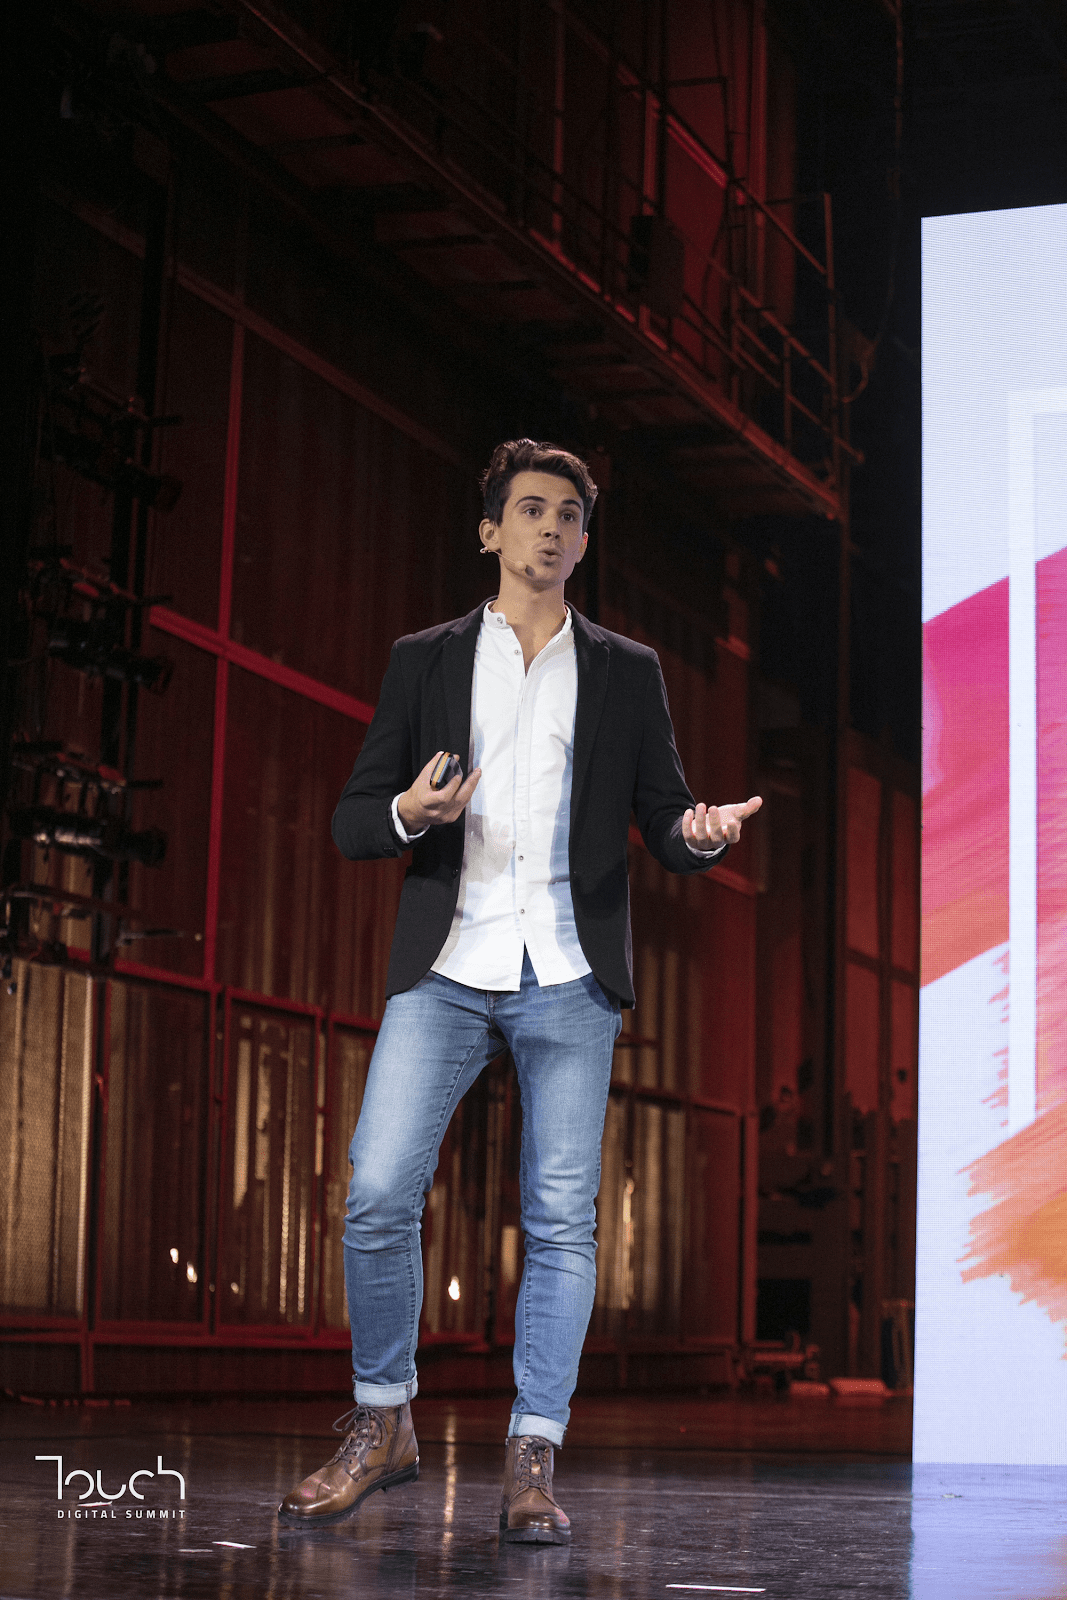 Guillaume on the stage